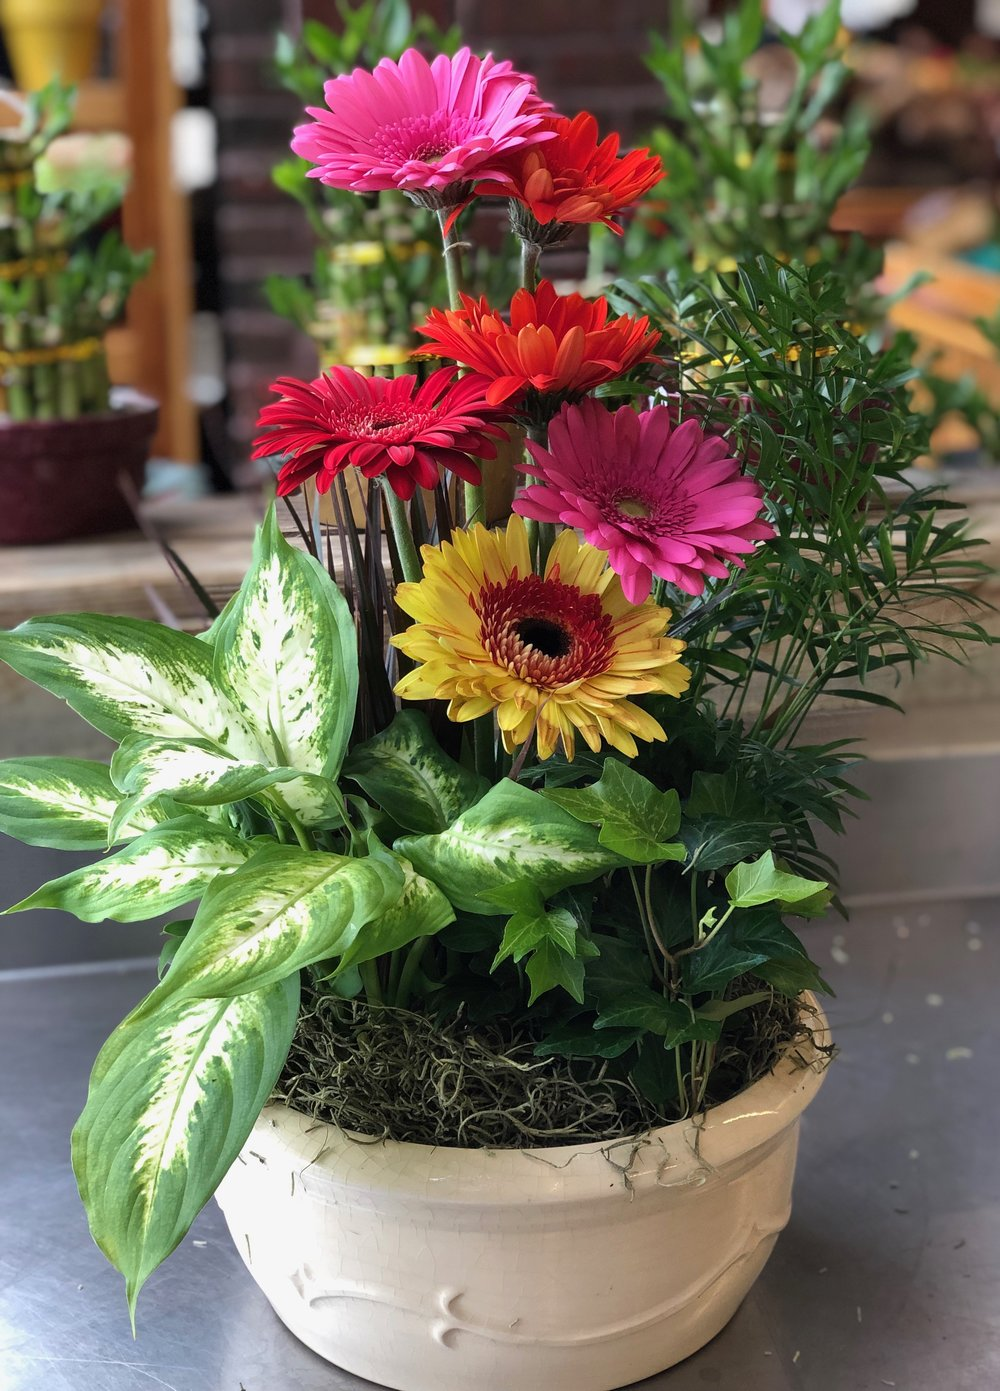 Gerbera and plants in clay pot available in our floral department. We create custom planters, too!